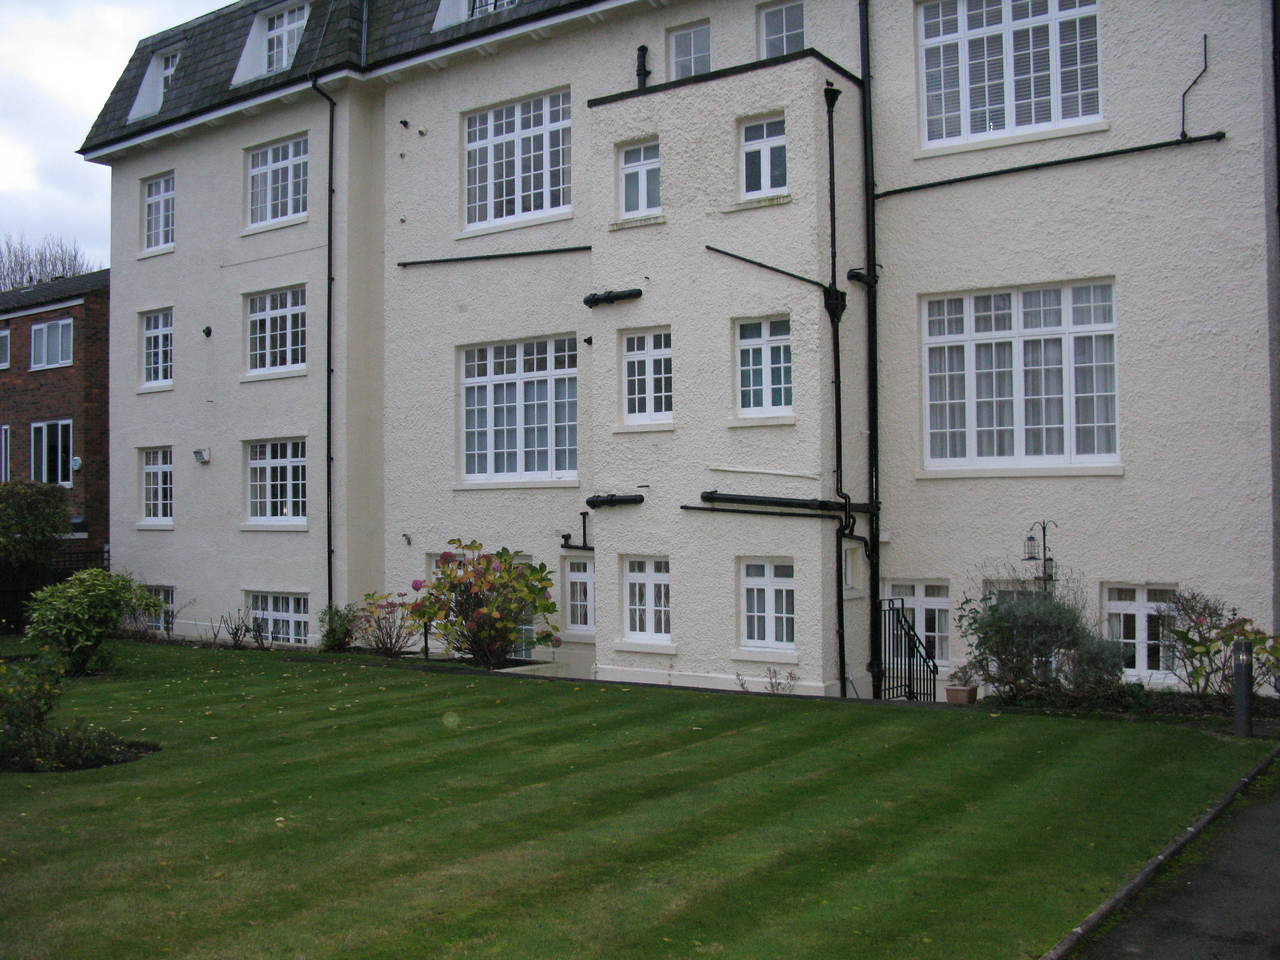 Wimbledon Village 900 Square Feet 2 Bed Duplex Apartment With Garage The Online Letting